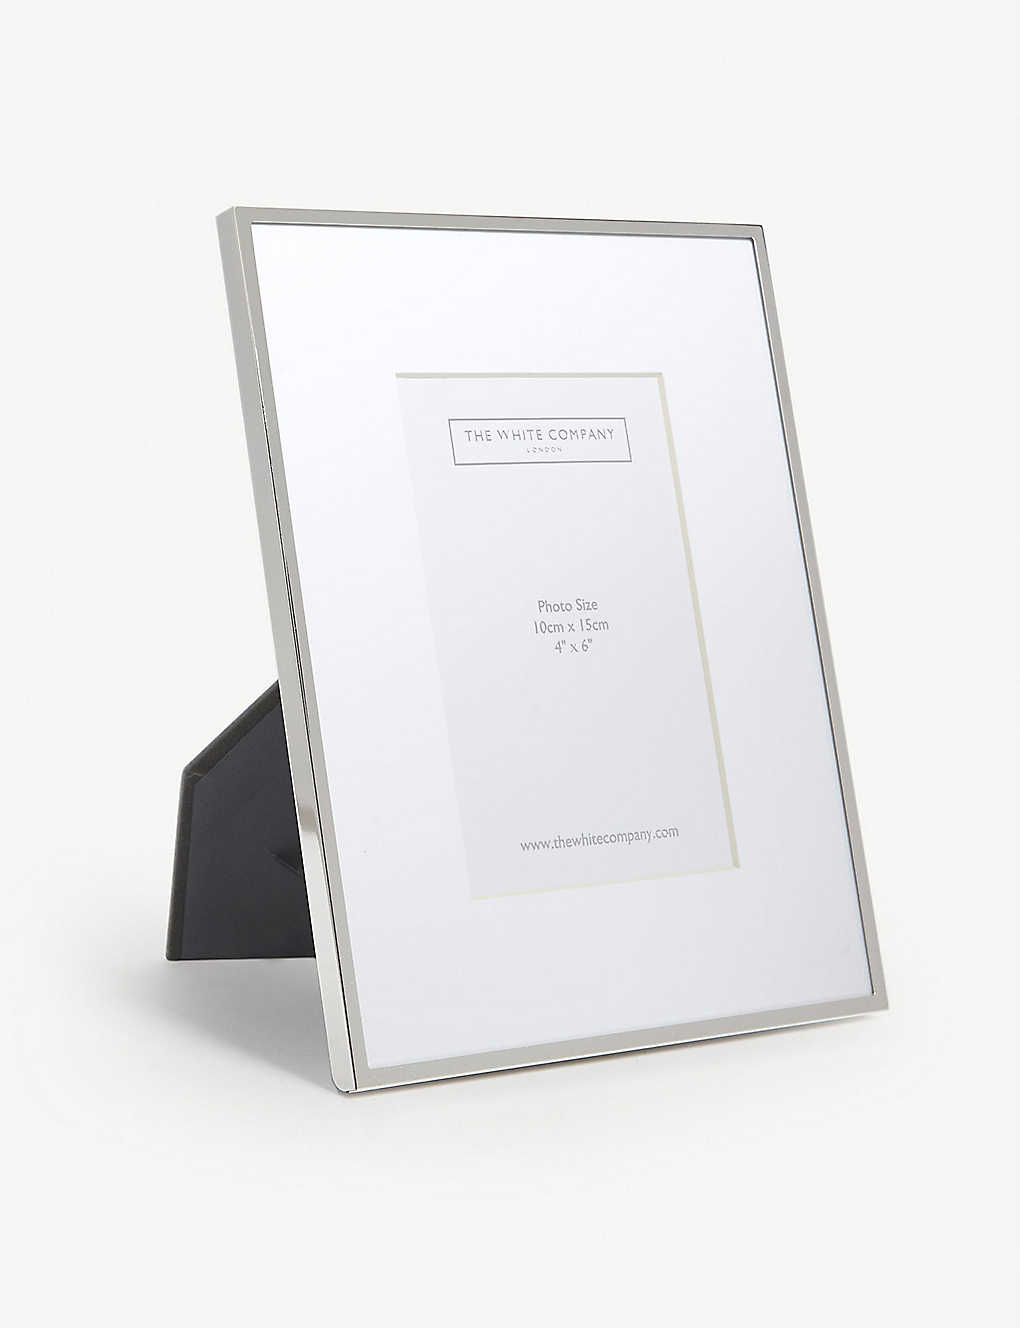 THE WHITE COMPANY: Fine silver photo frame 4x6''